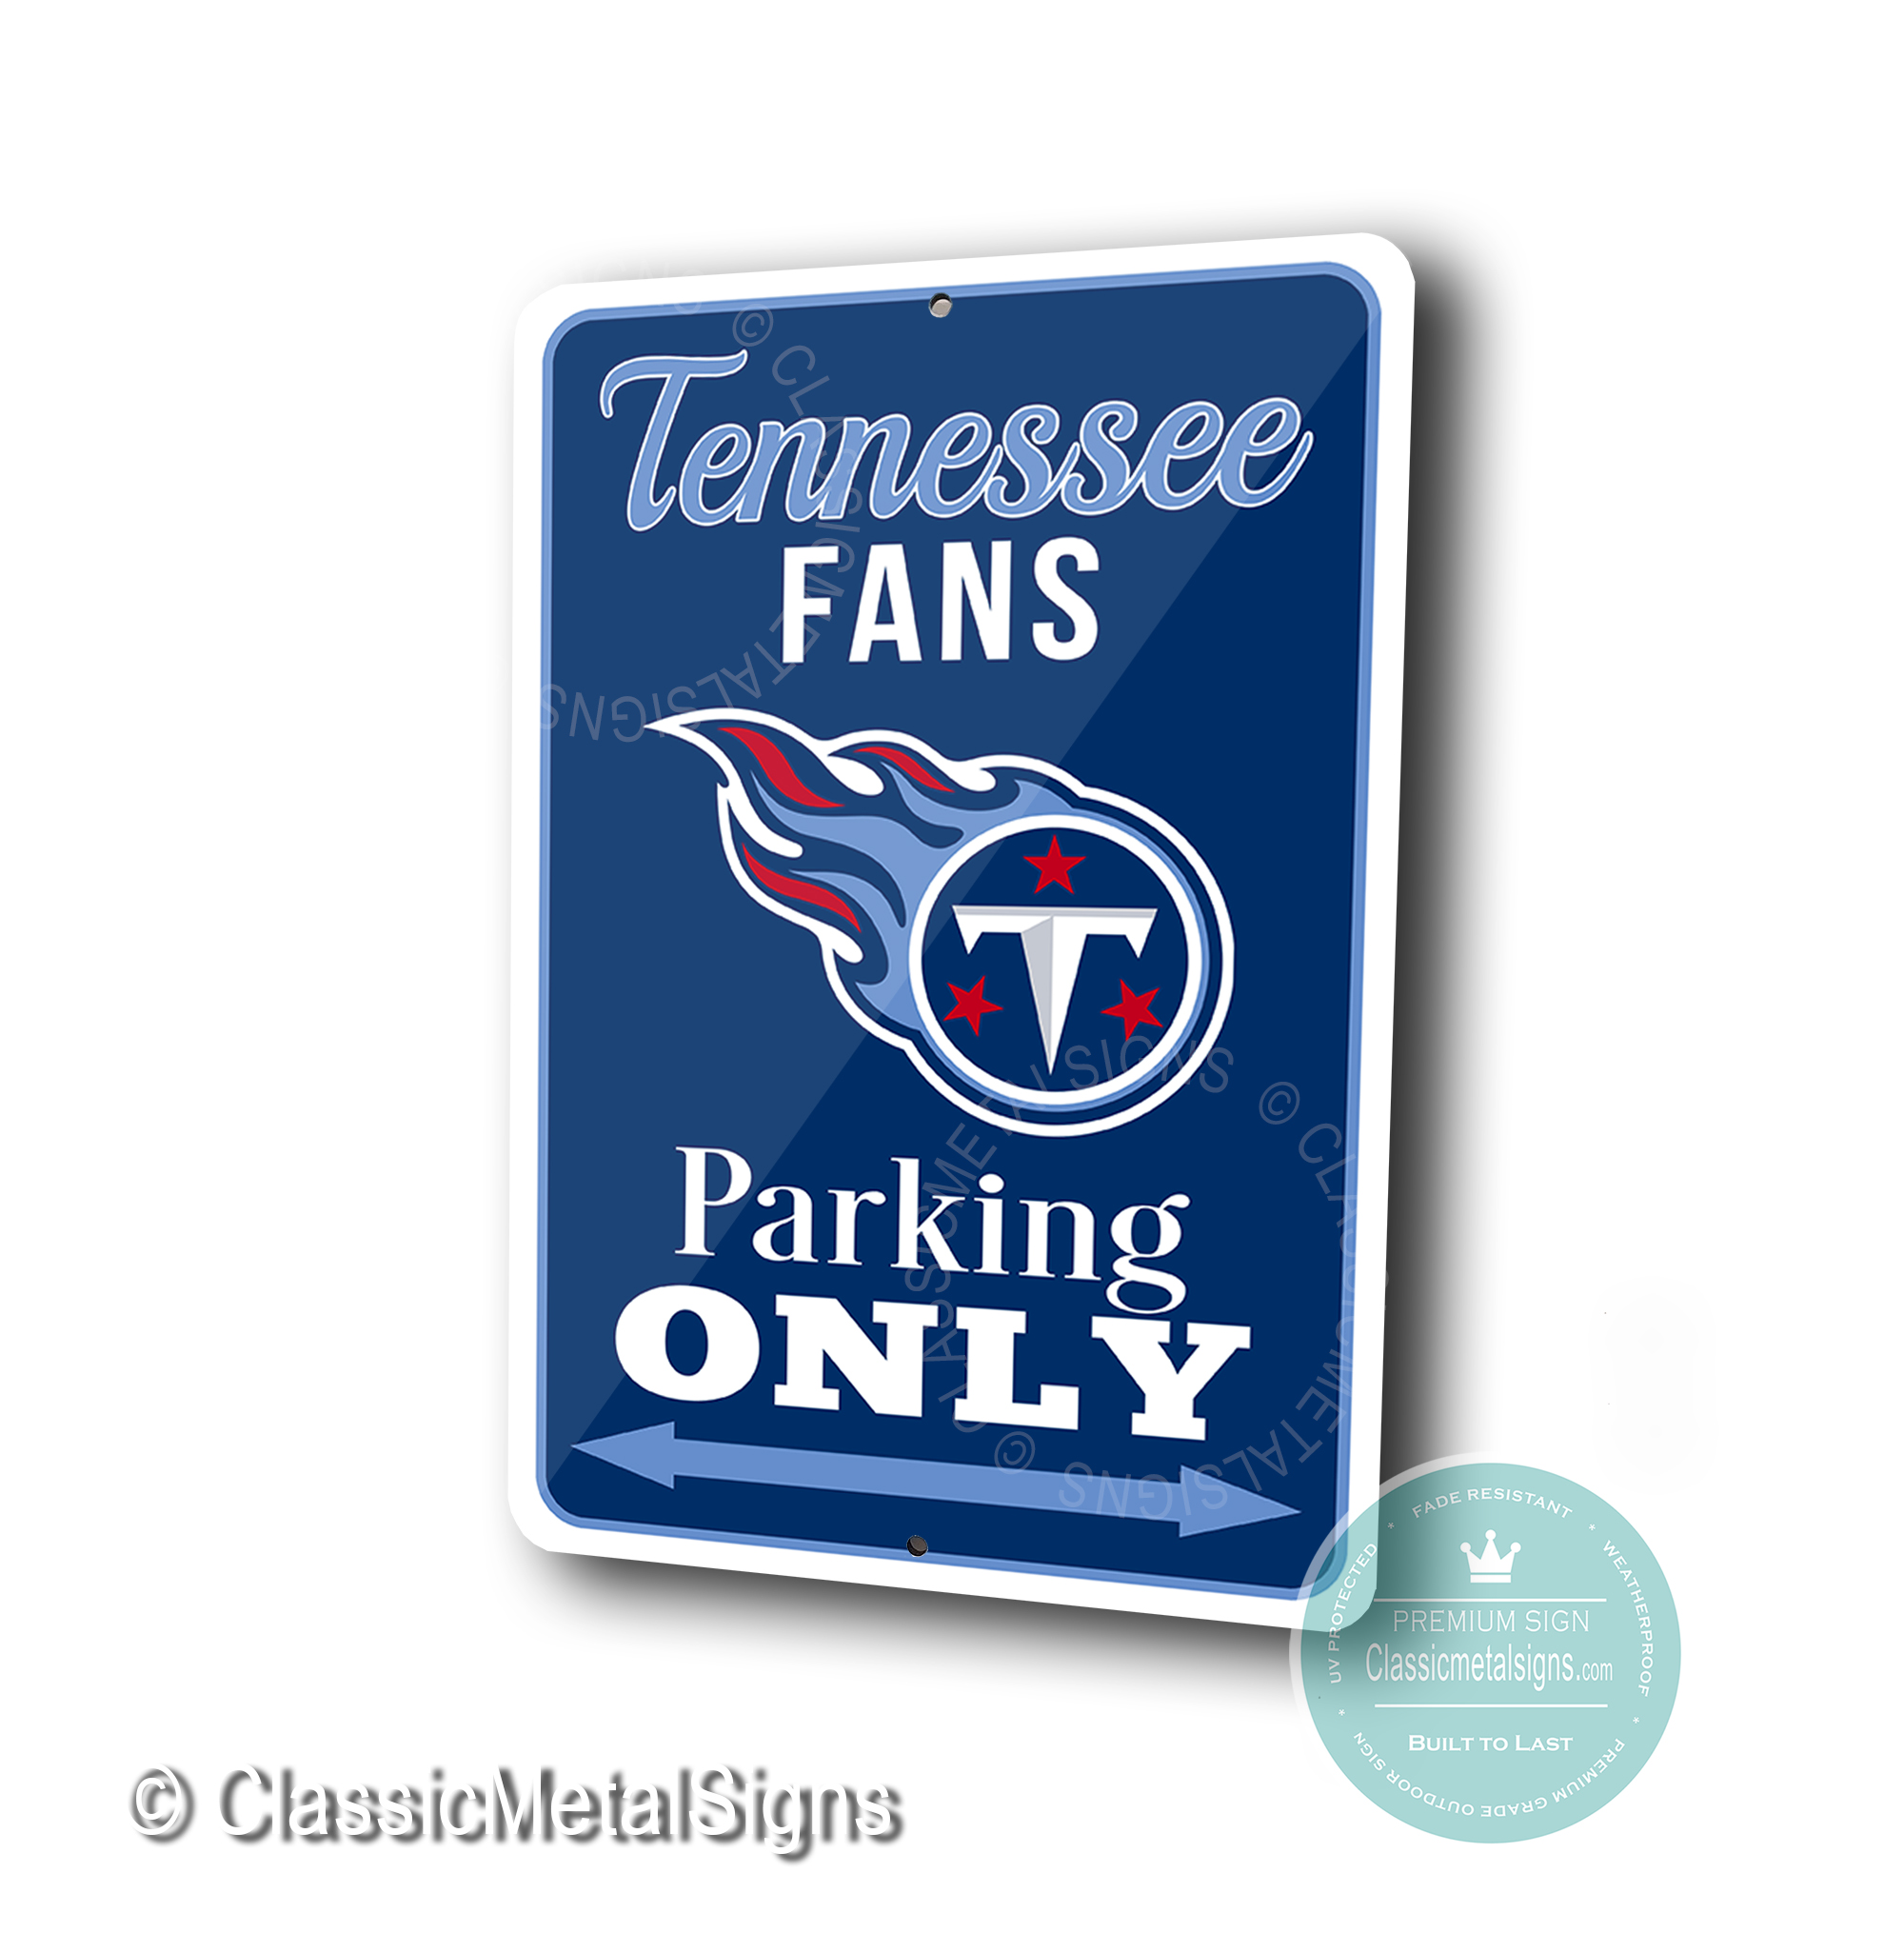 Tennessee Titans Parking Only Signs